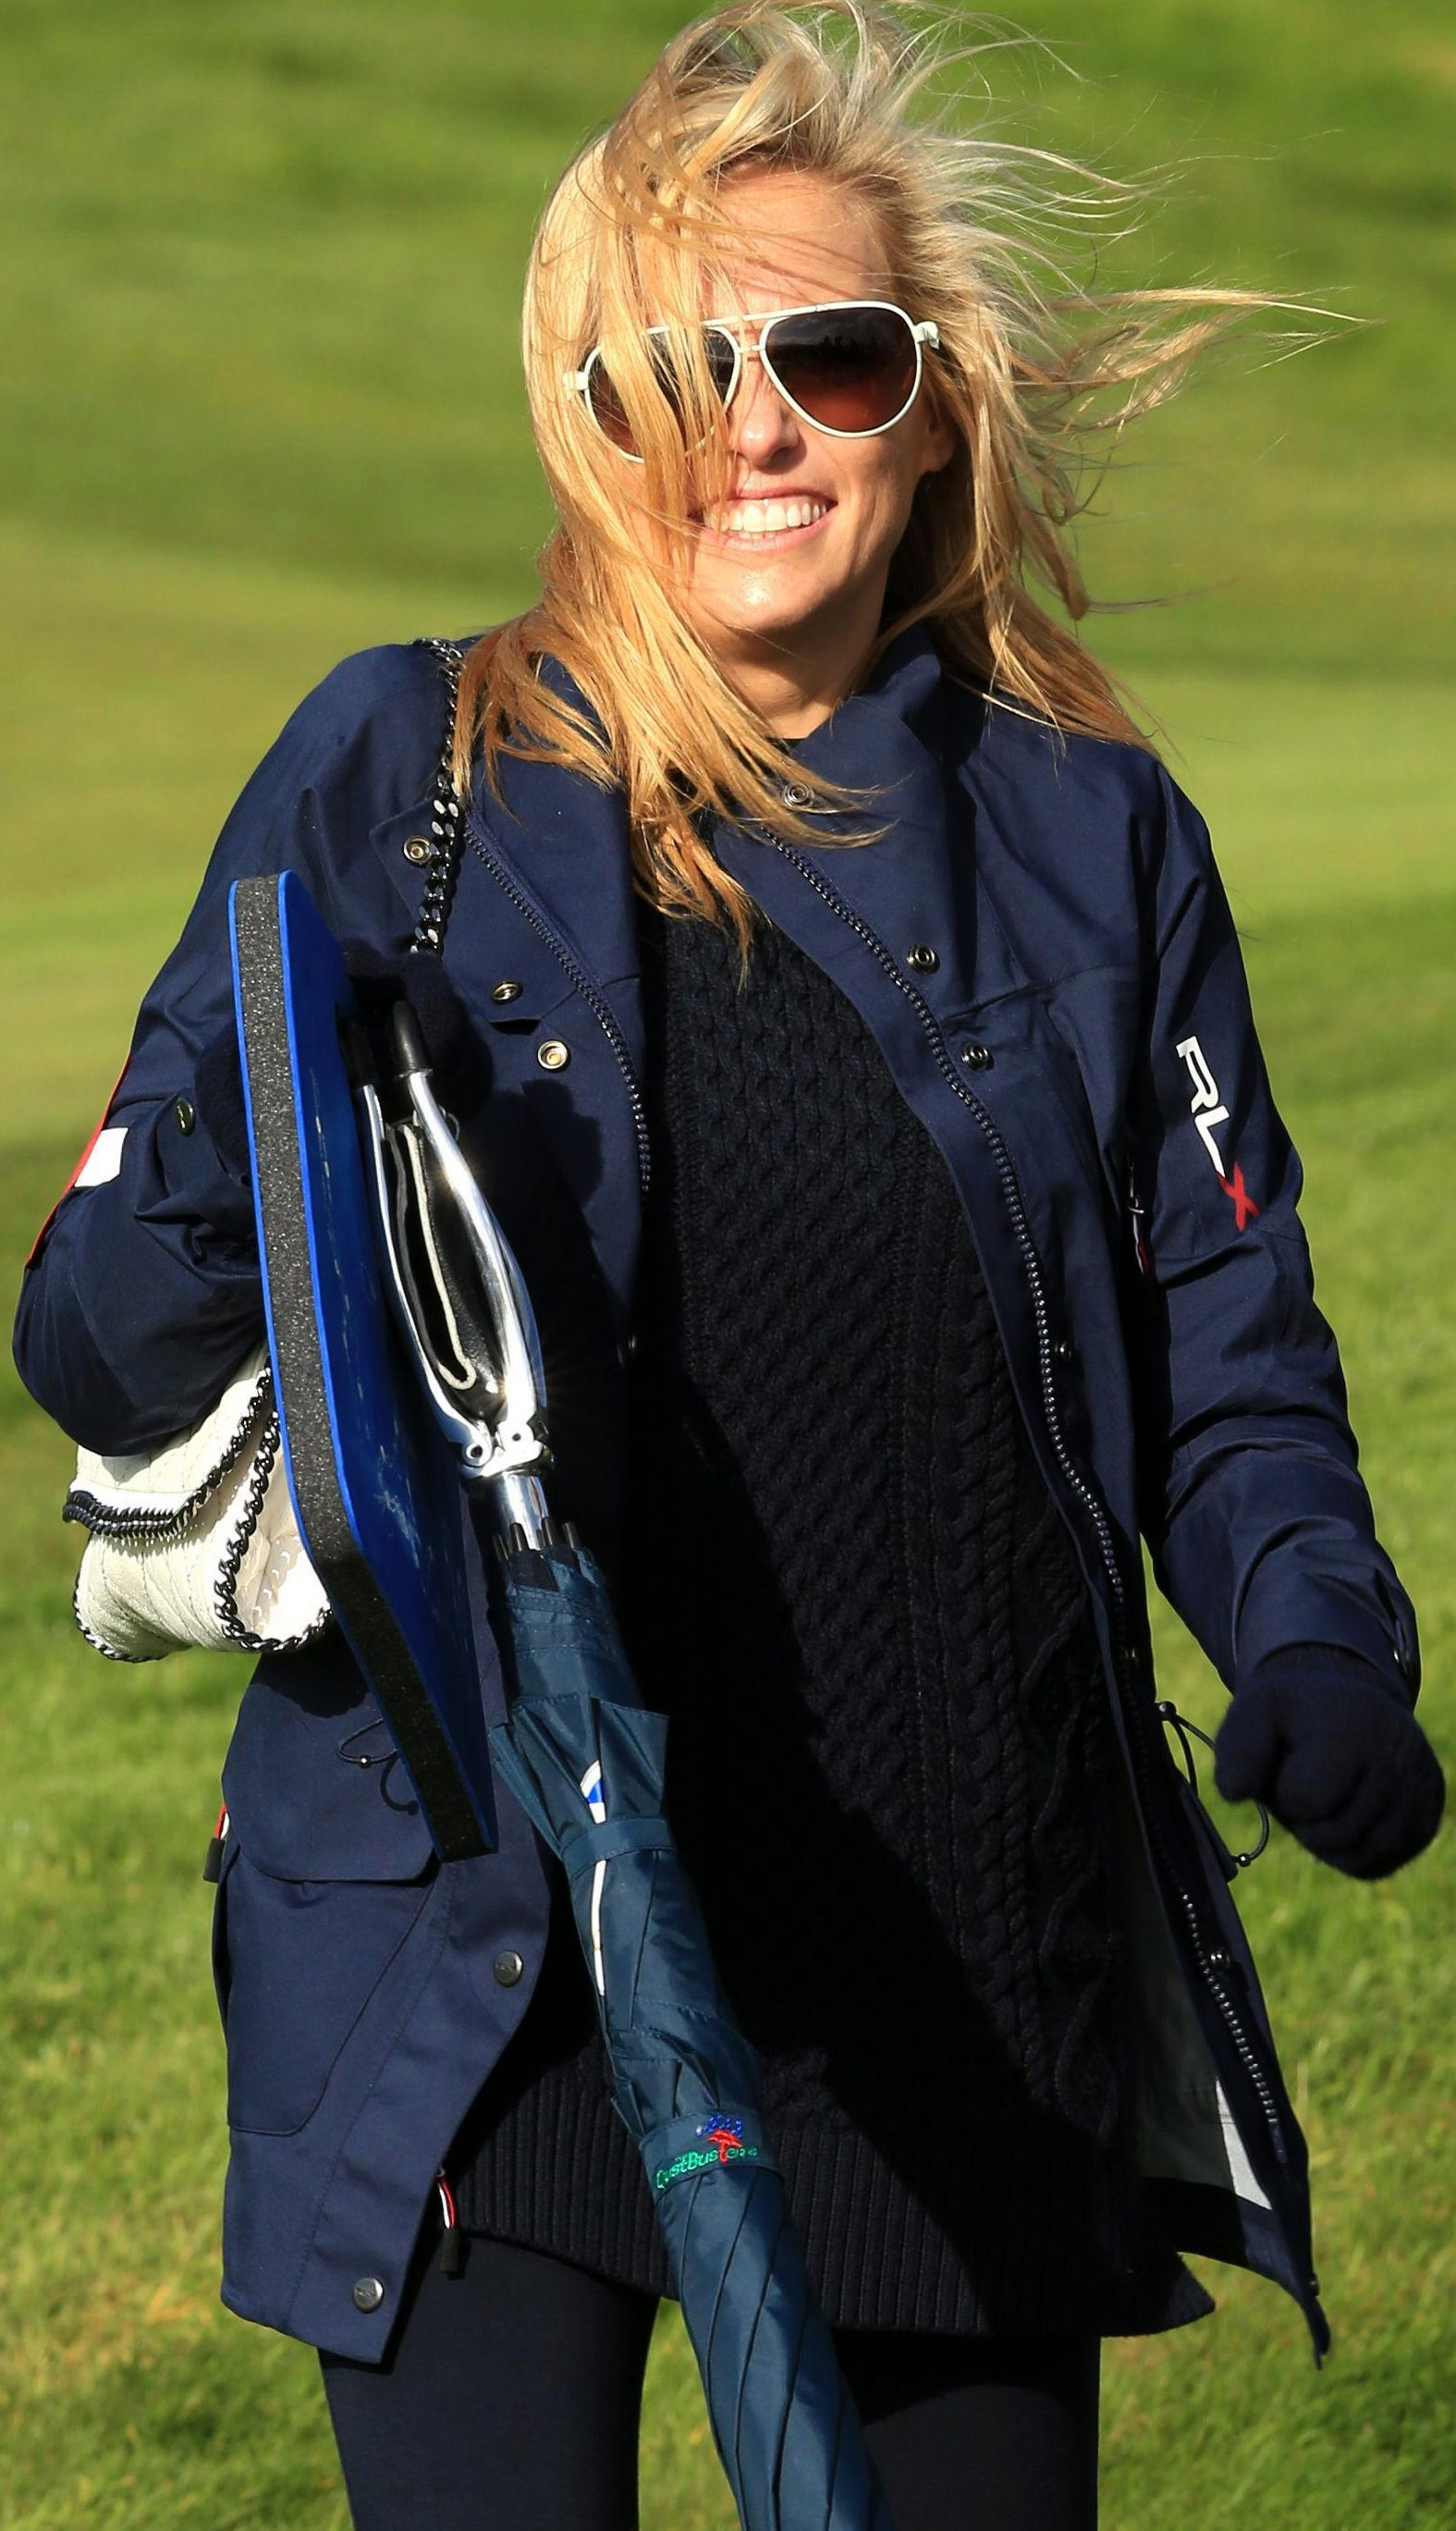 Amy is a constant companion of Phil on the course - but has suffered severe medical trauma off it